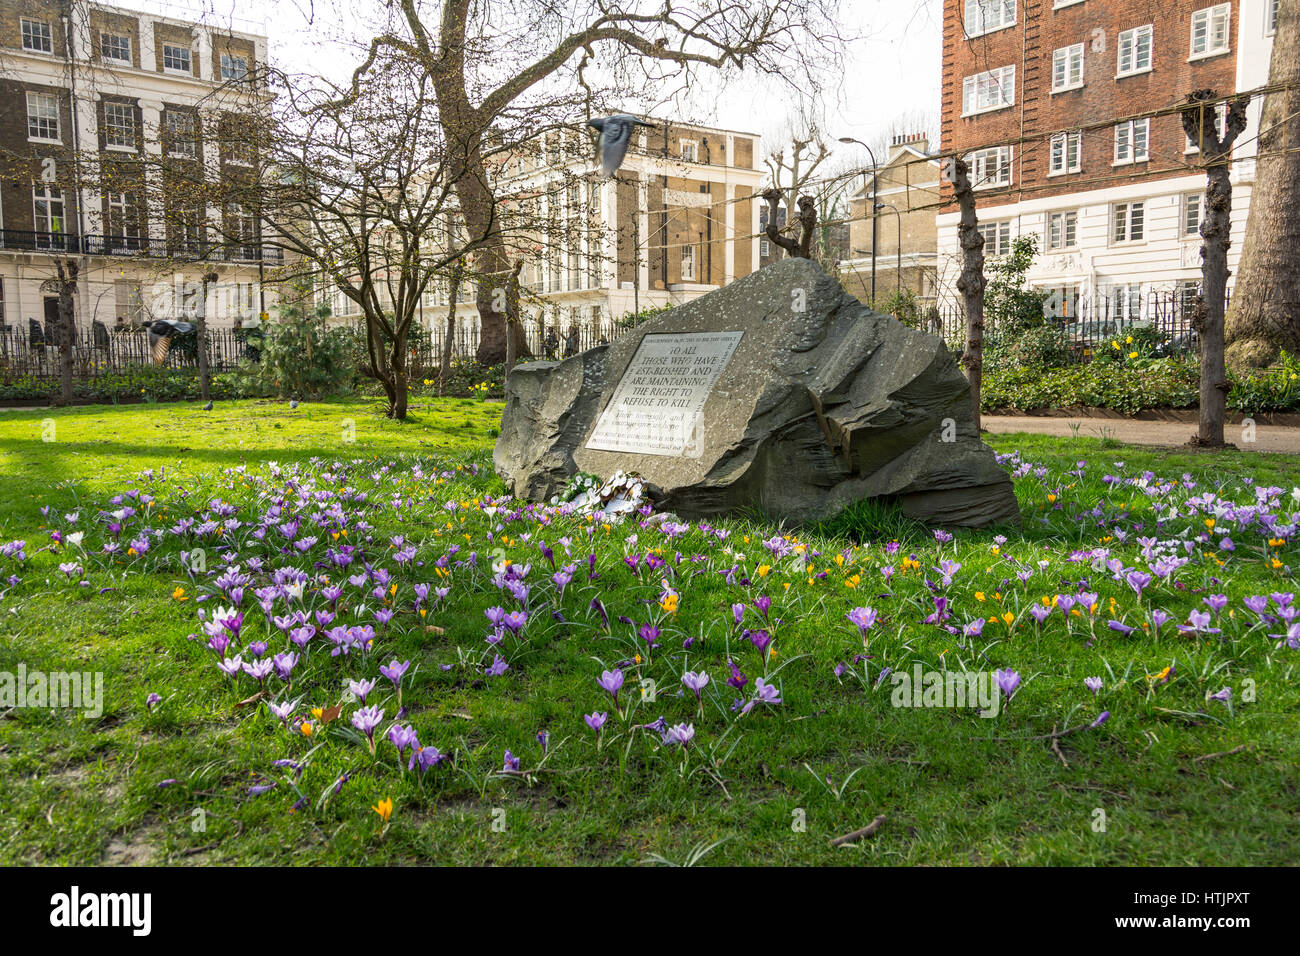 Conscientious Objectors Stone, Tavistock Square, London - Stock Image